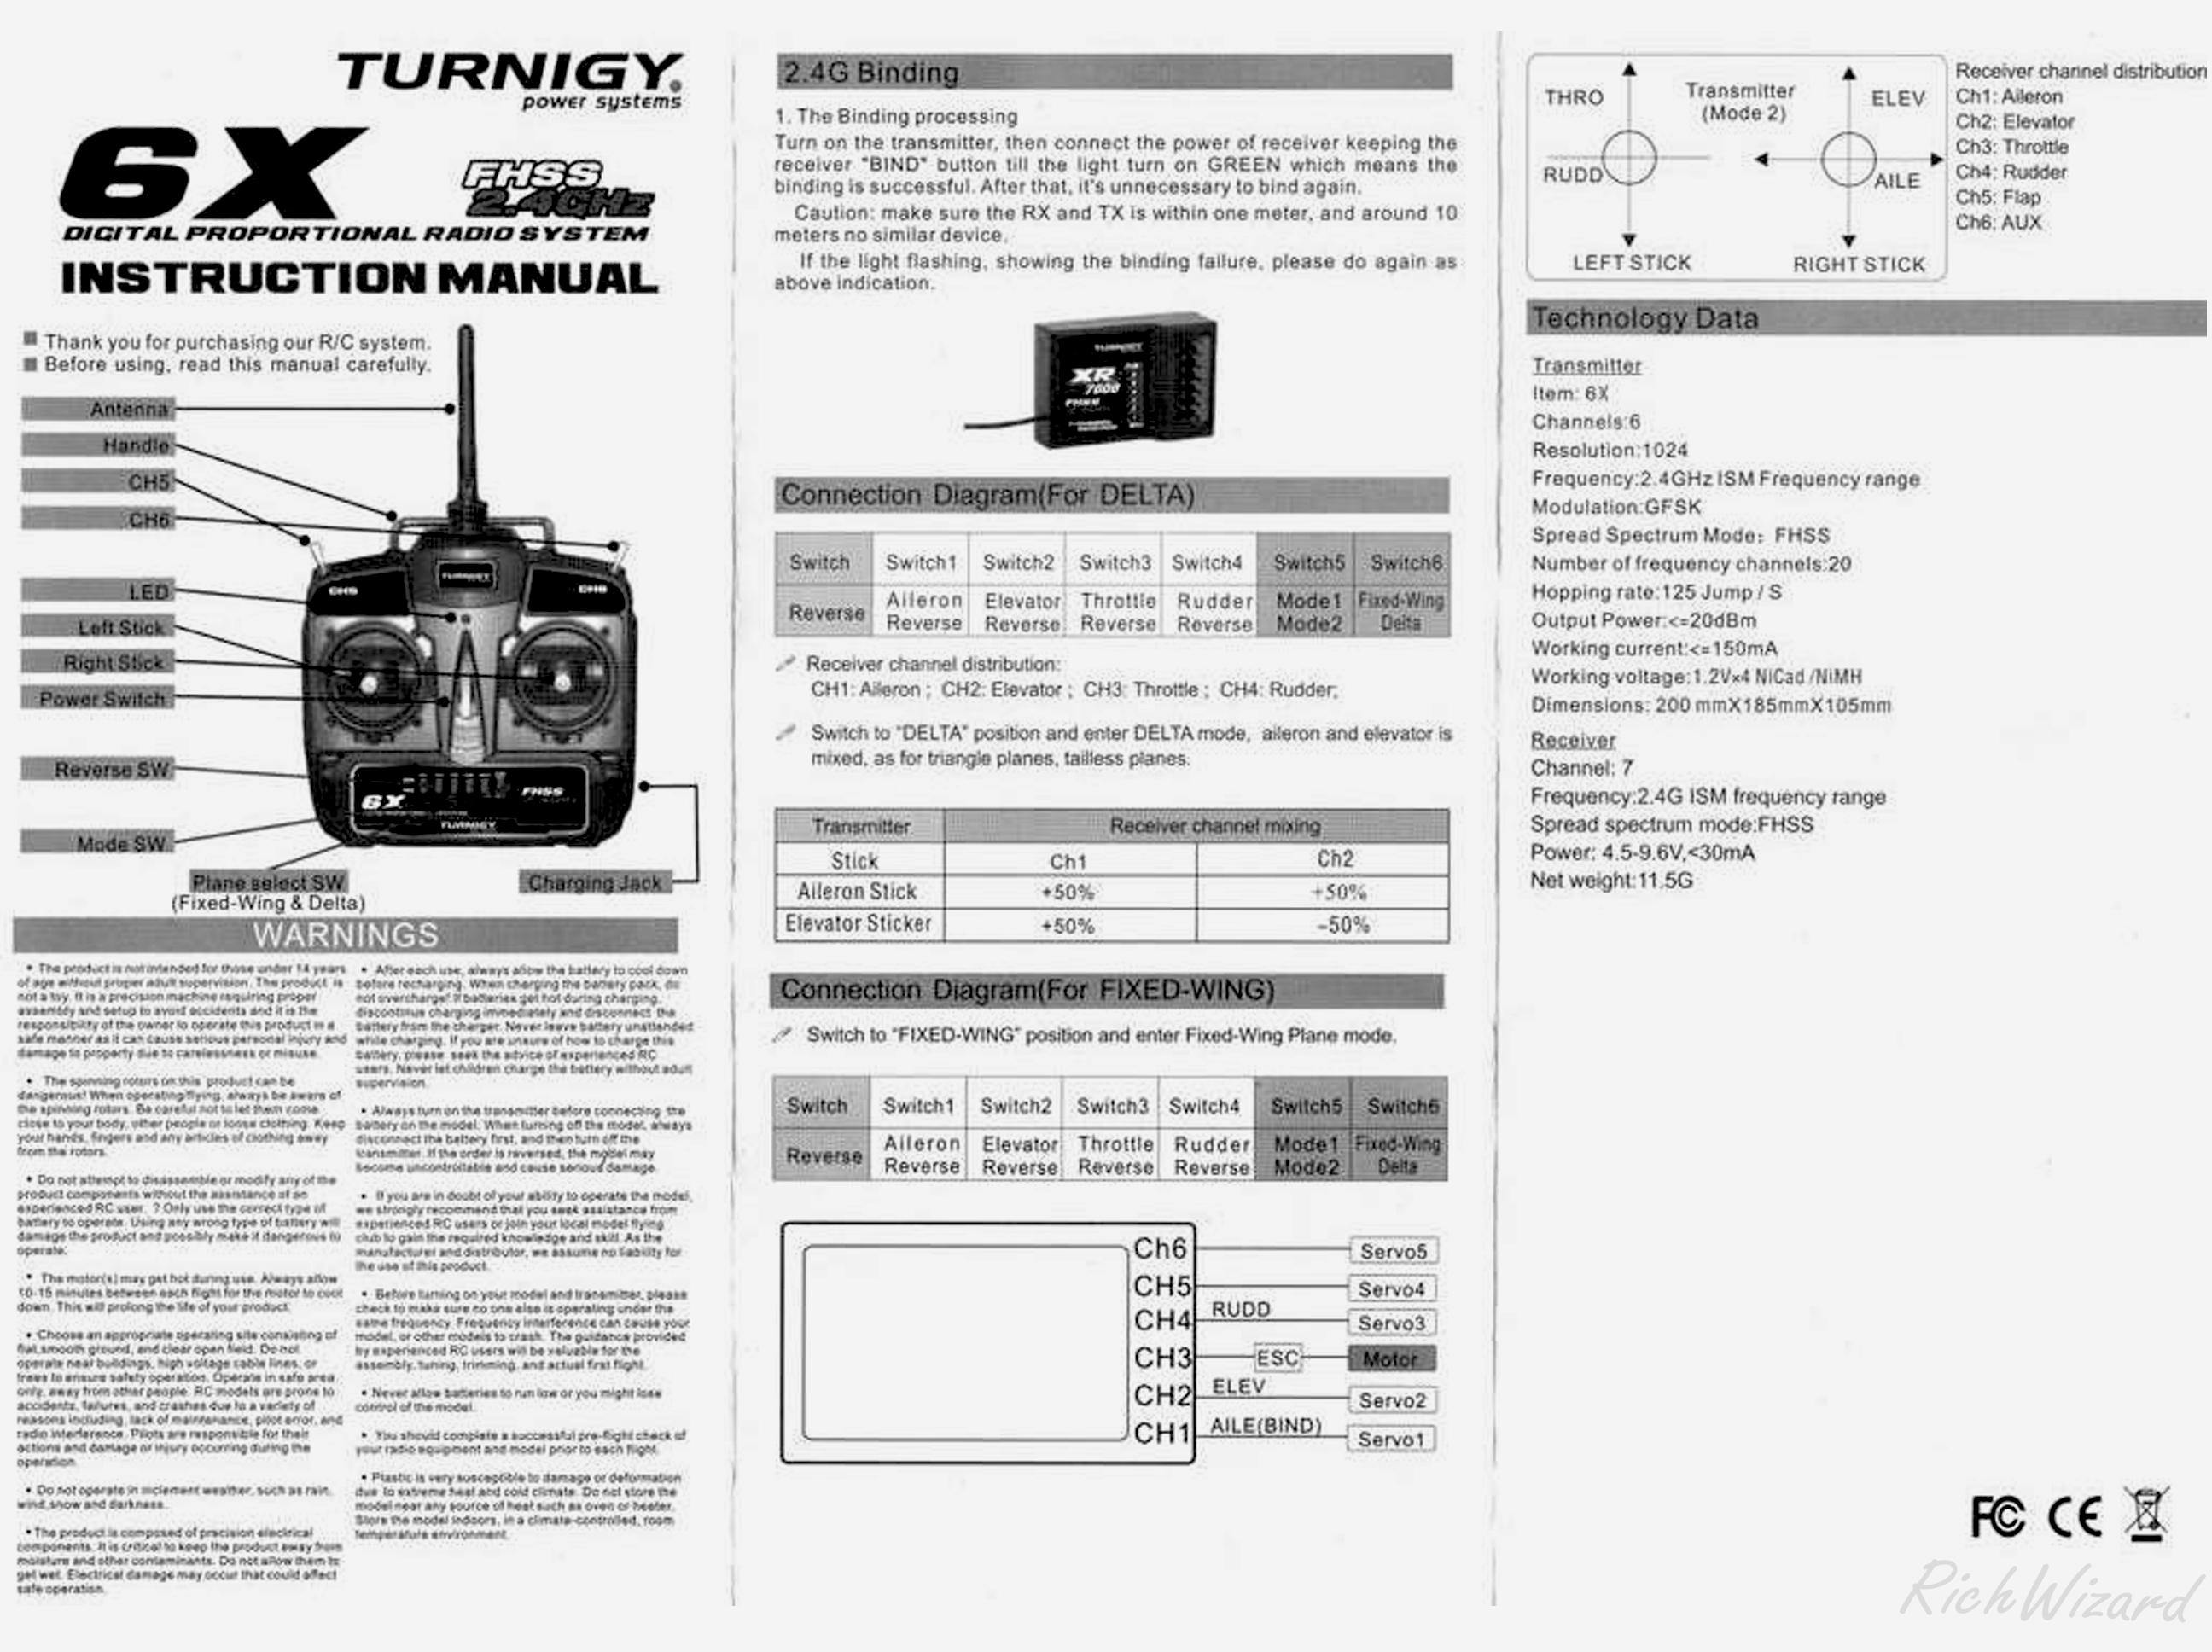 Turnigy 6x Fhss 2 4ghz Transmitter And Receiver Mode 2